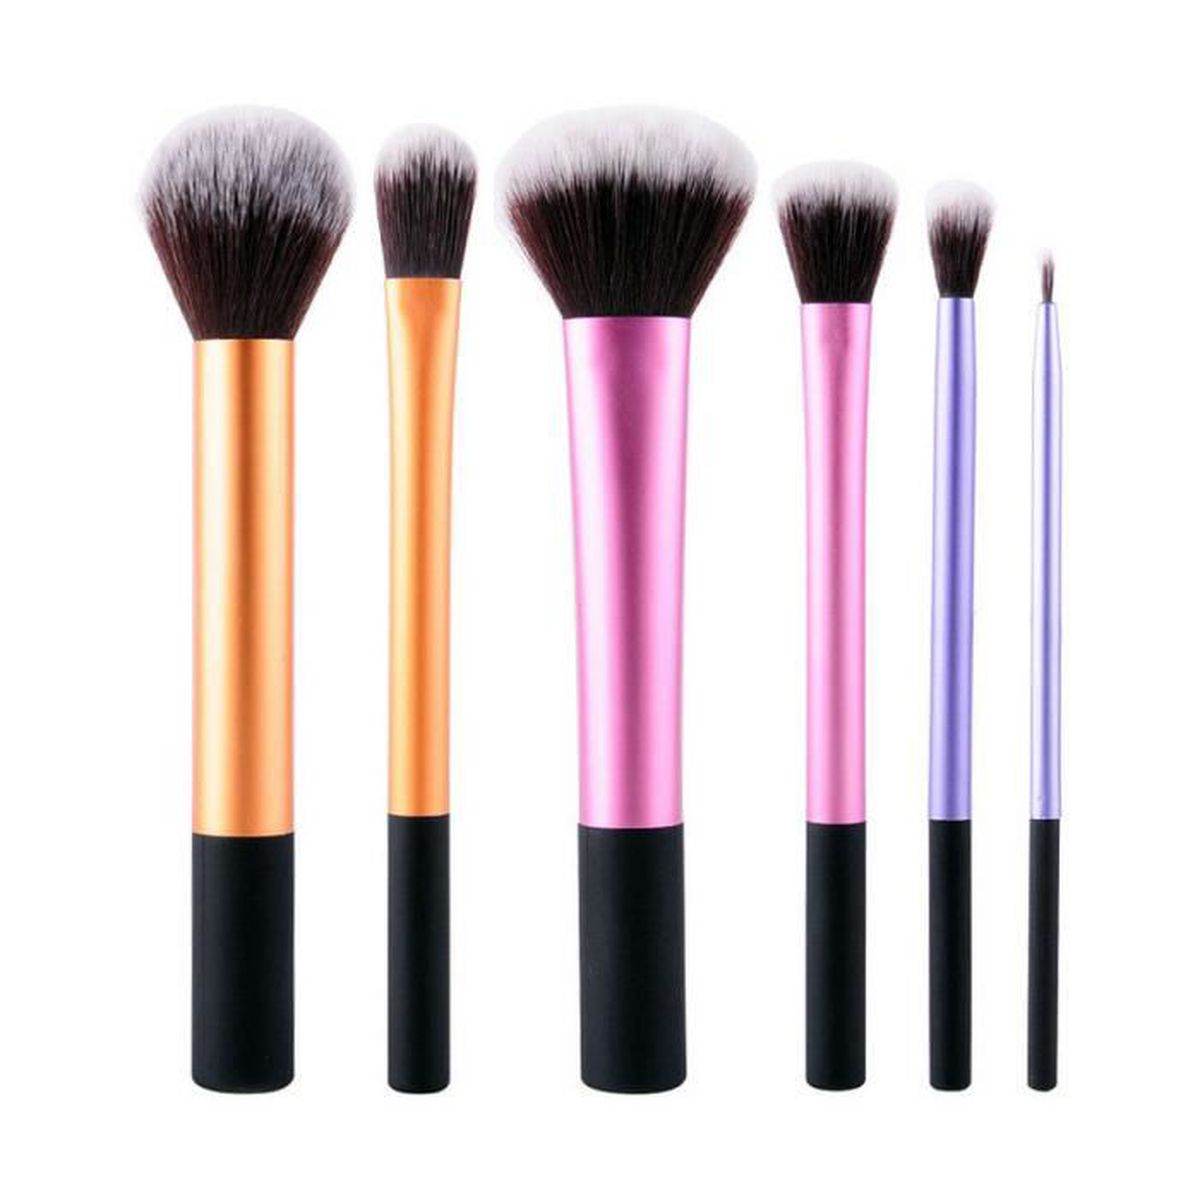 lot de 6pcs pinceau de maquillage brosse cosm tique trousse maquillage achat vente petits. Black Bedroom Furniture Sets. Home Design Ideas